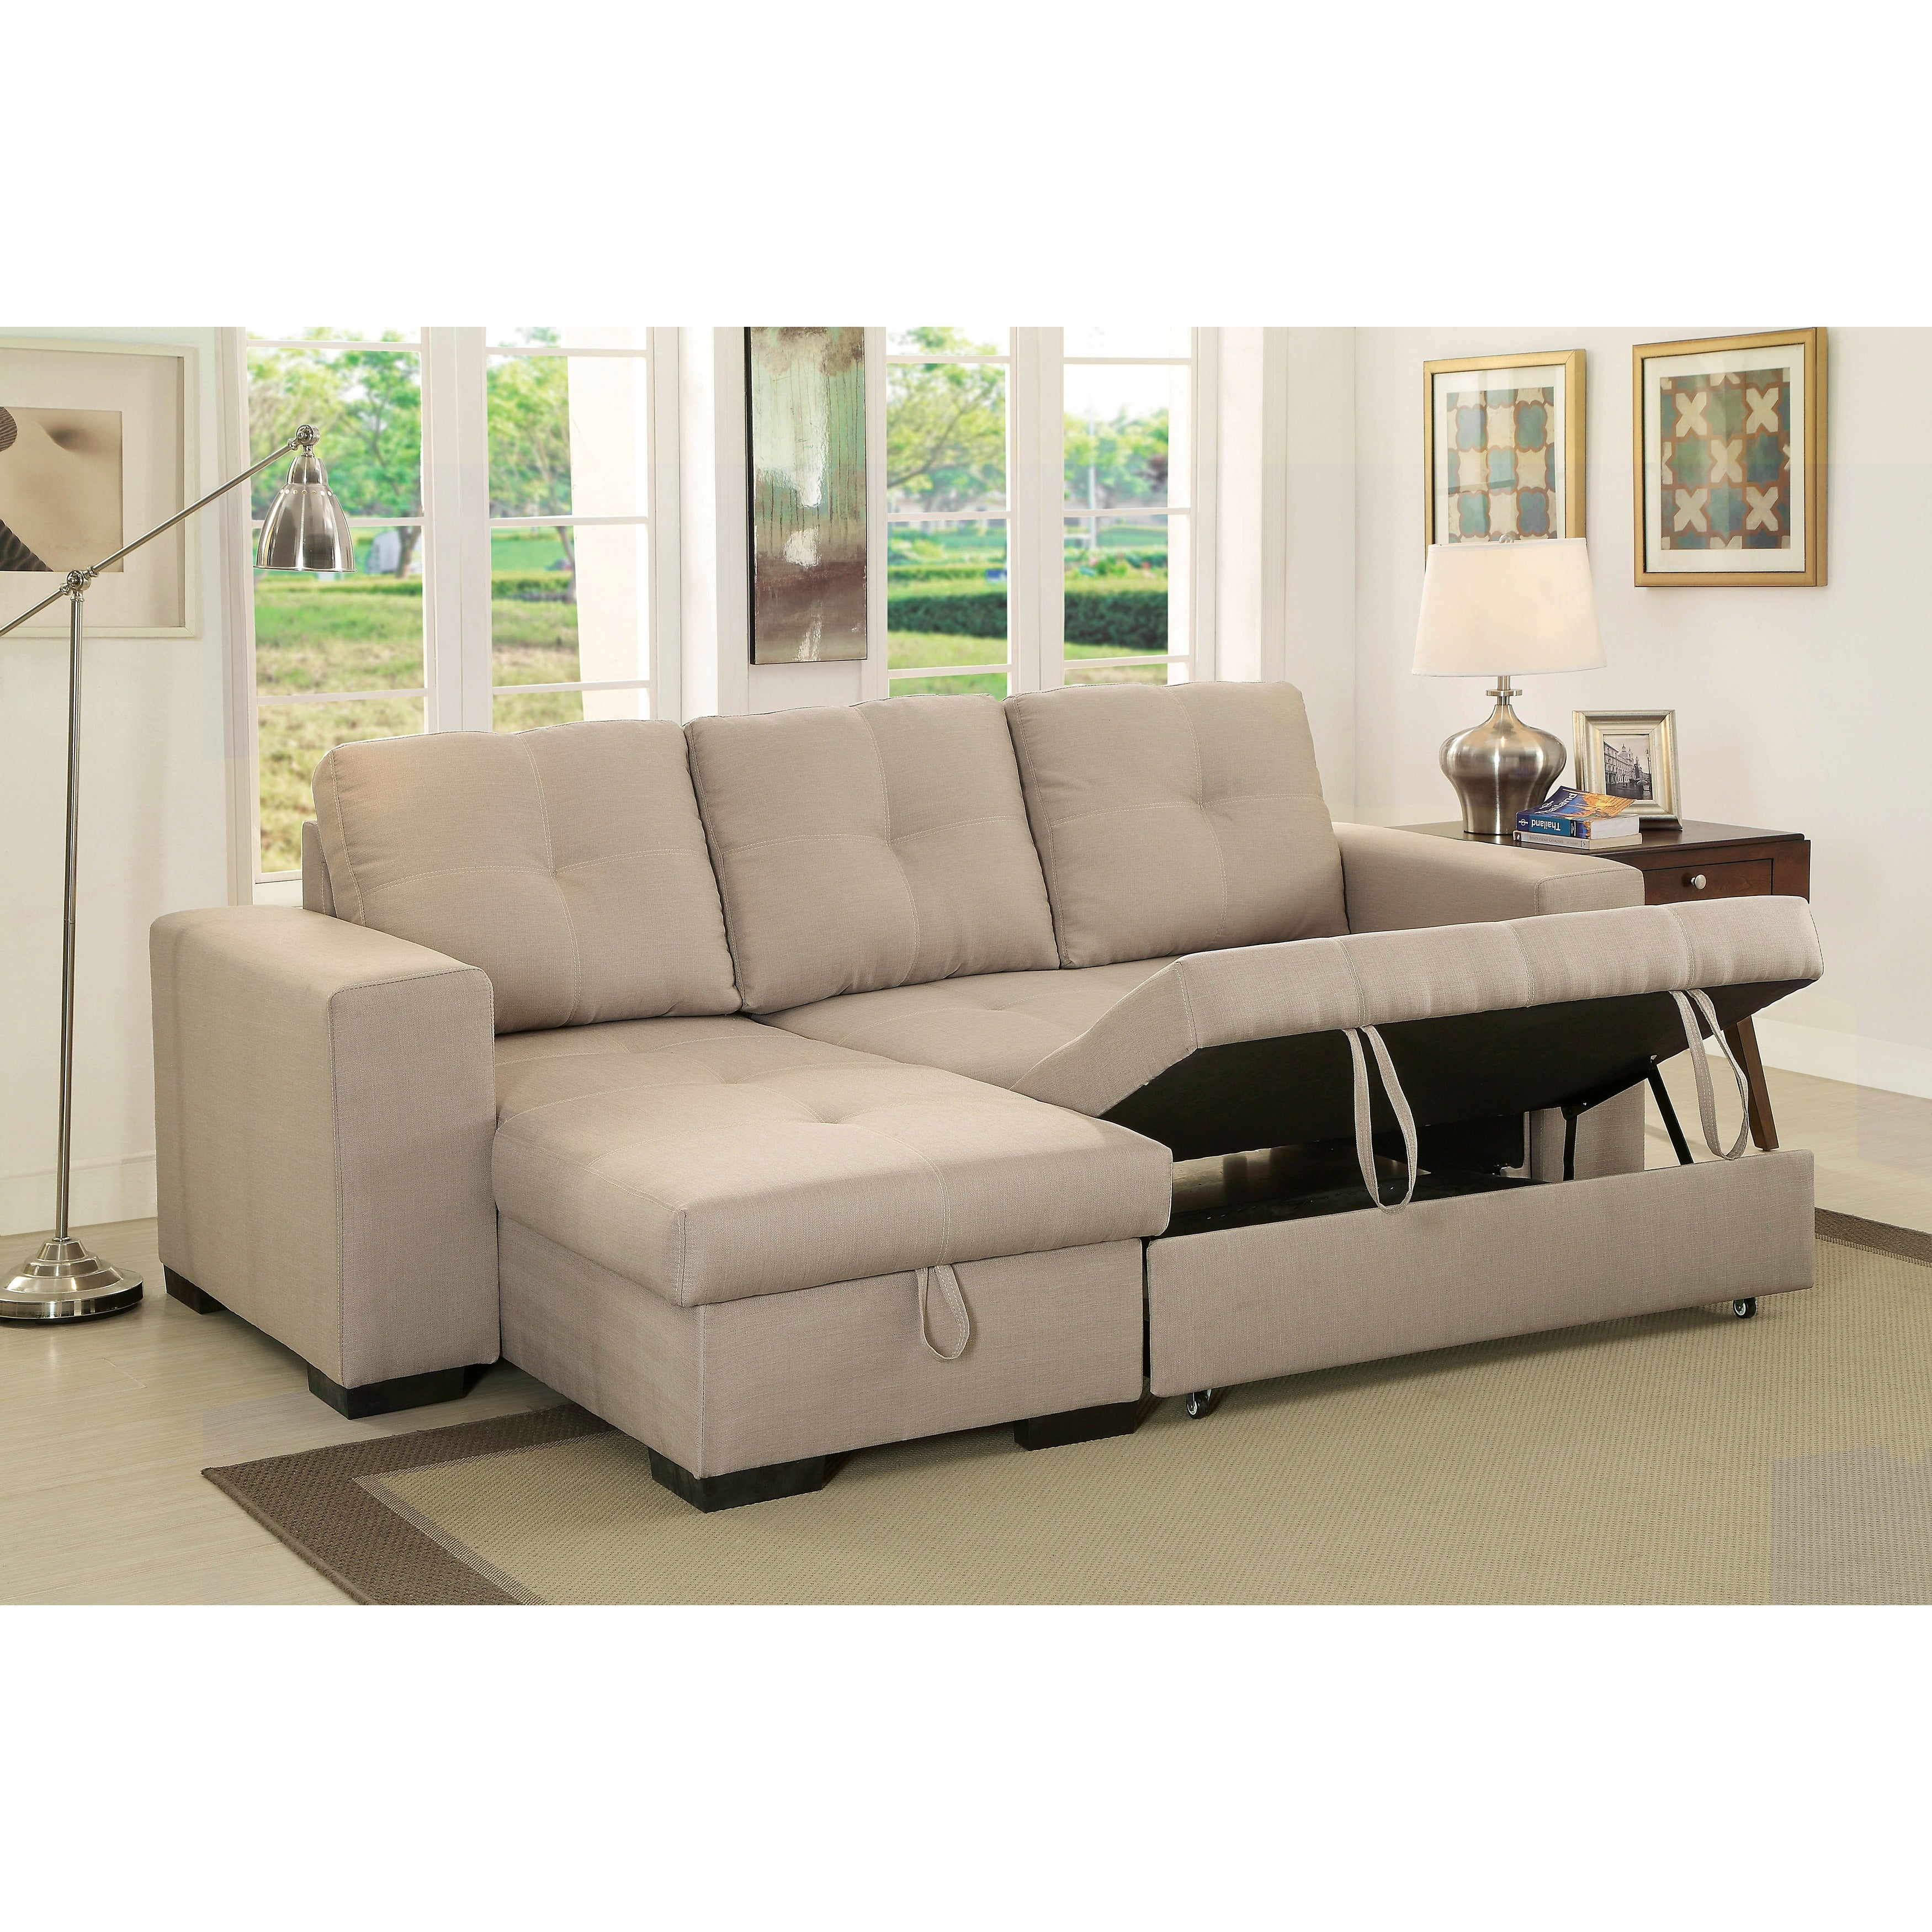 Furniture Of America Sagel Reversible Sectional With Pull Out Sleeper    Free Shipping Today   Overstock   17488055